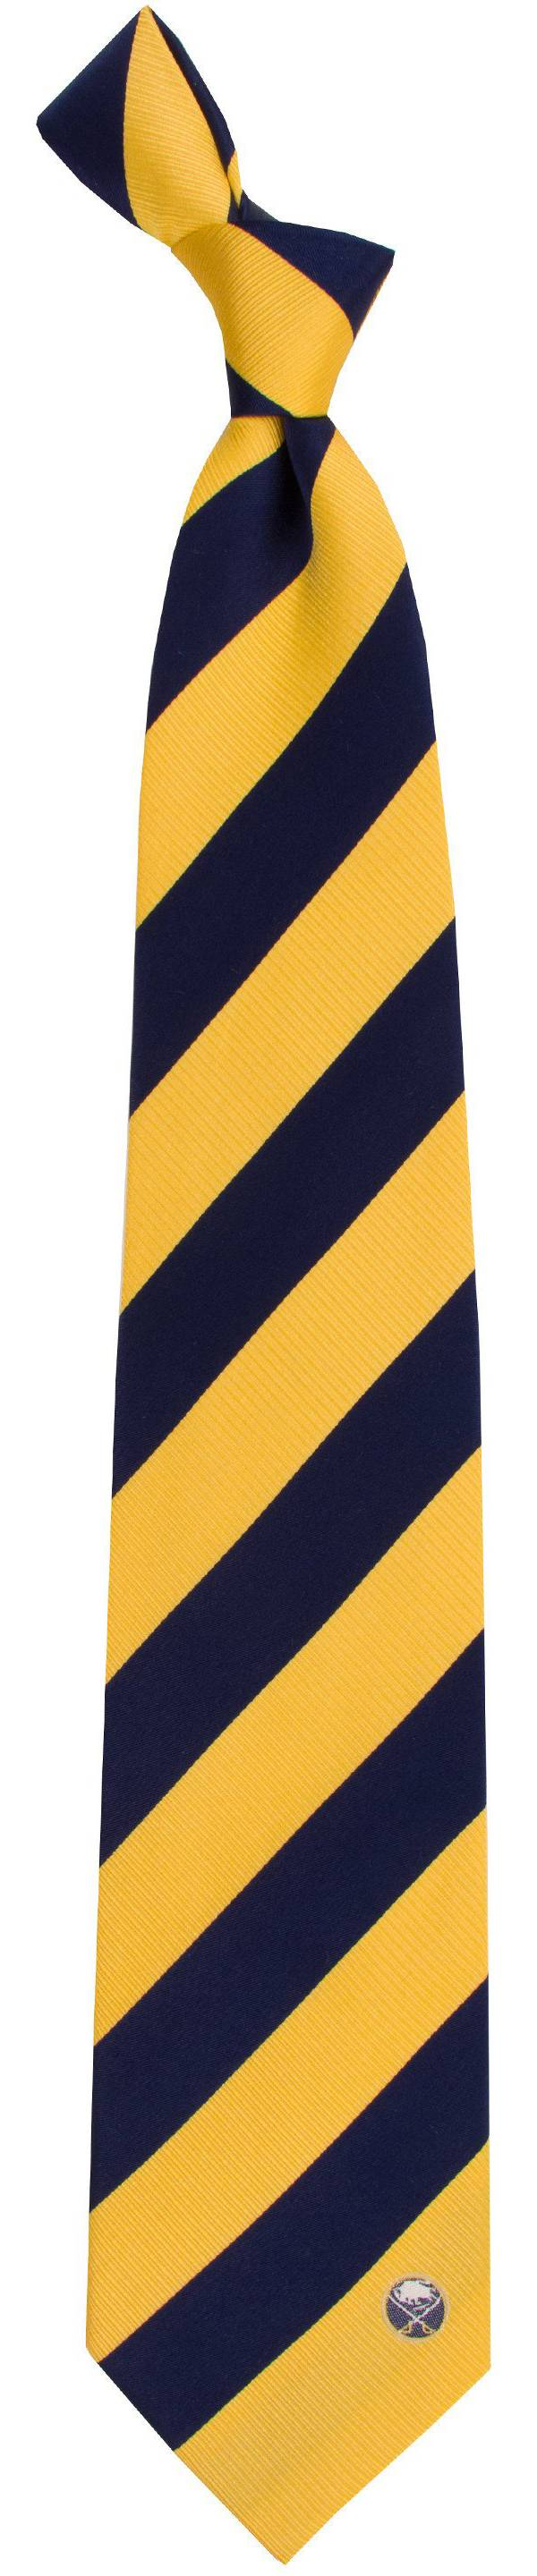 Eagles Wings Buffalo Sabres Woven Silk Necktie product image